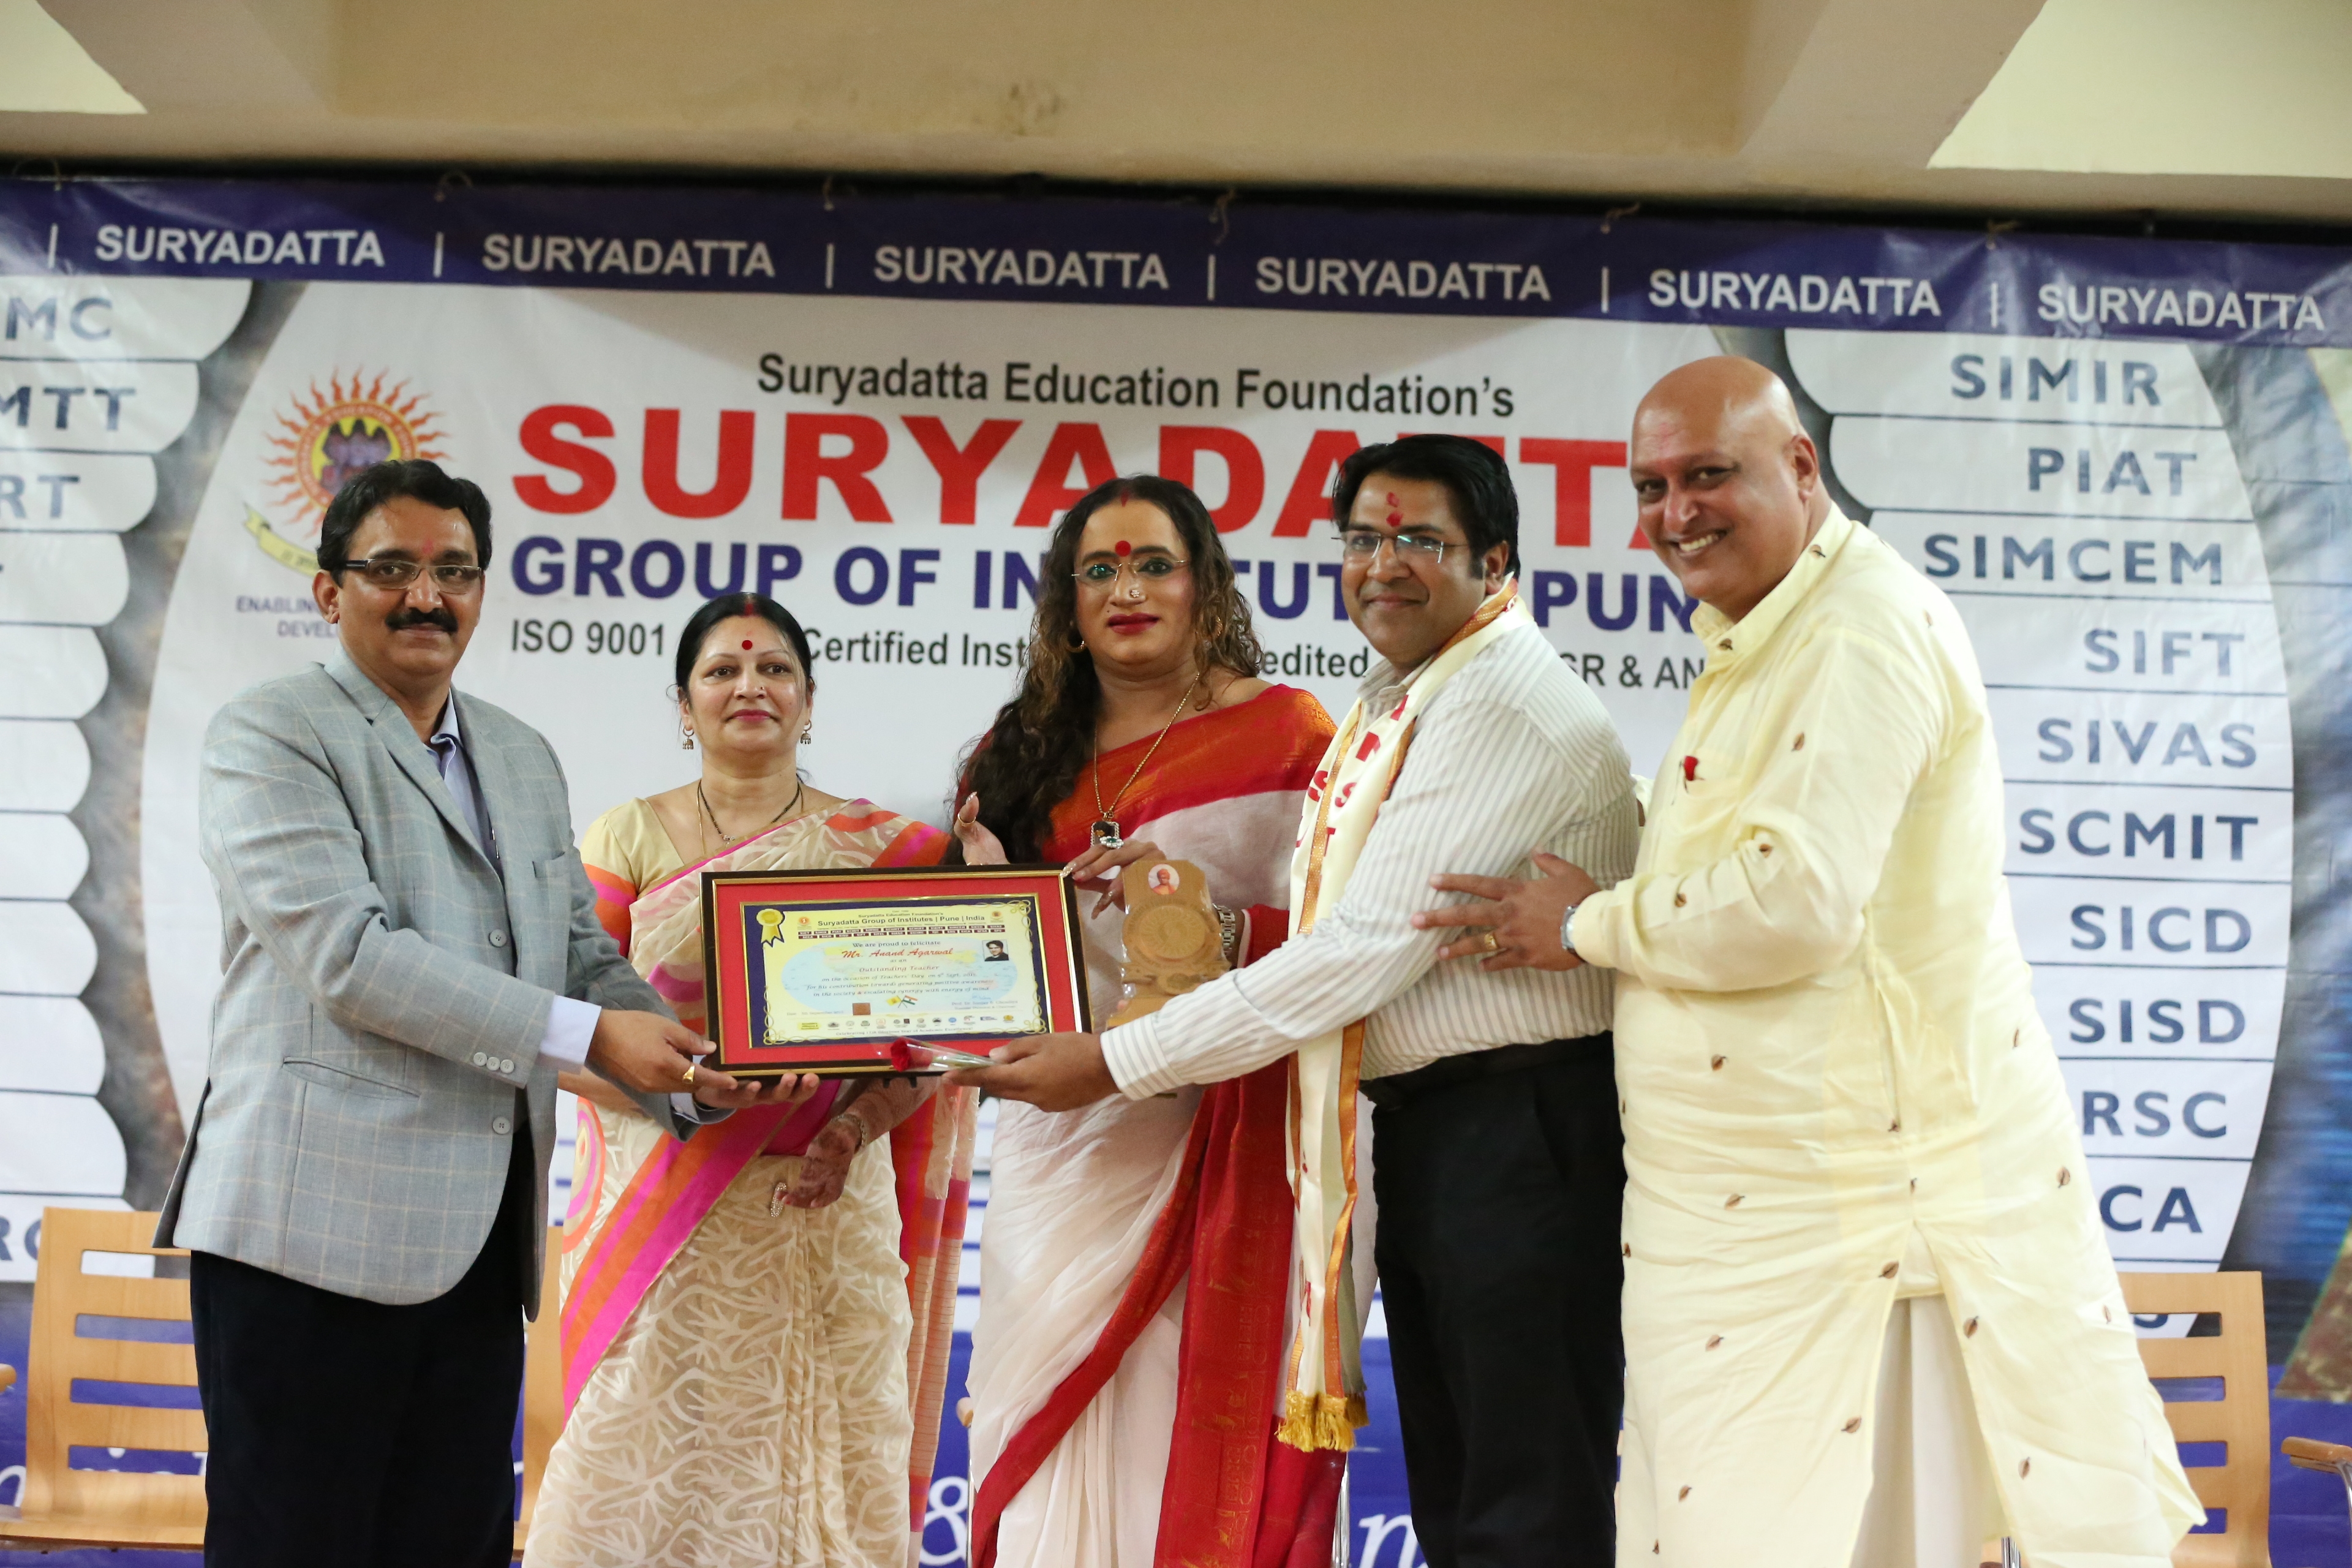 Suryadatta Confers Best Teachers Award to Ms. Laxmi Narayan Tripathi for her contribution towards generating positive awareness in the society for transgender community on the occassion of Teachers Day 2015